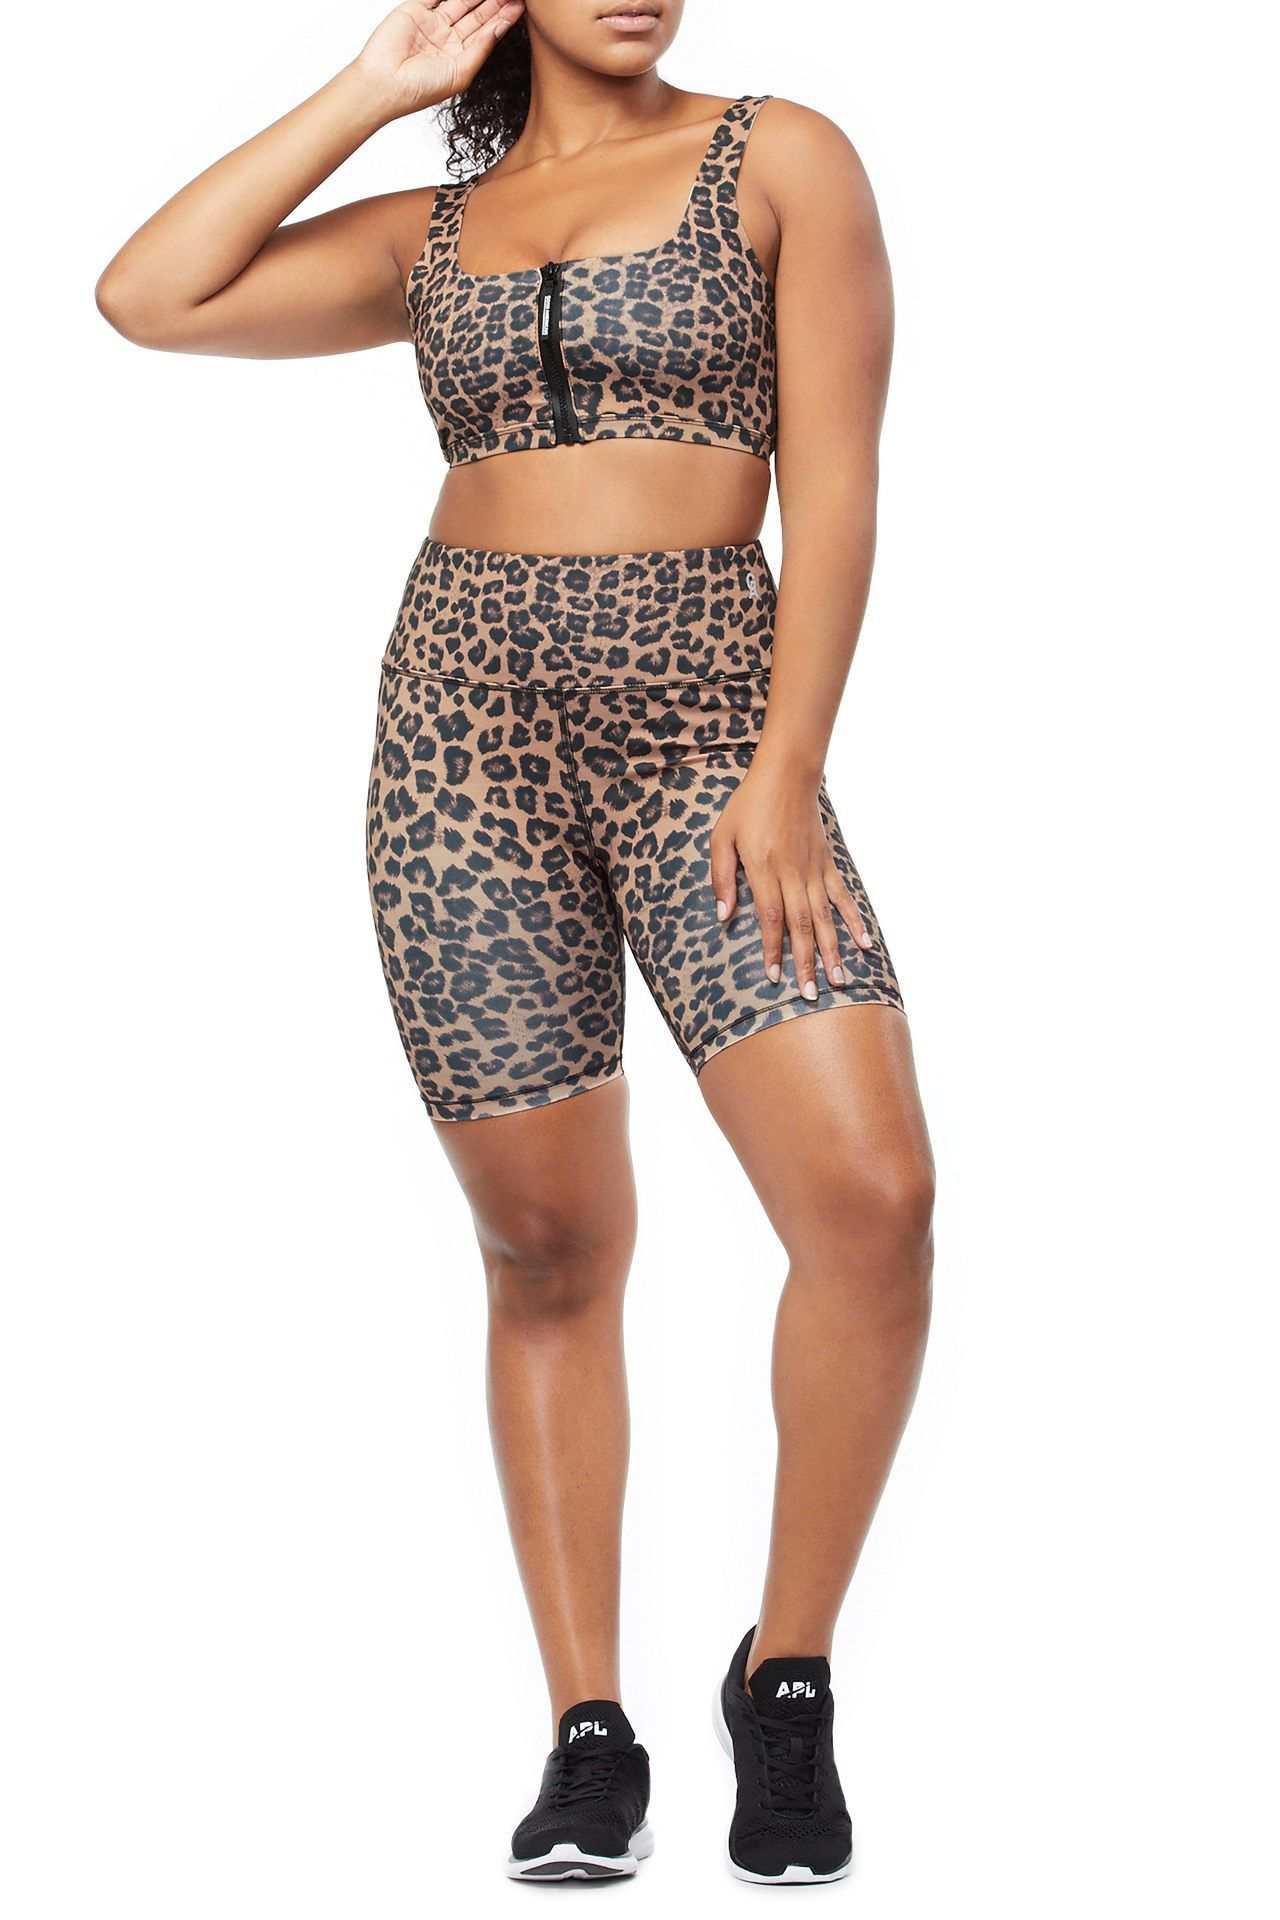 07bb319b3 Gym Outfits That ll Make You Want to Work Out — Cute Workout Clothes ...